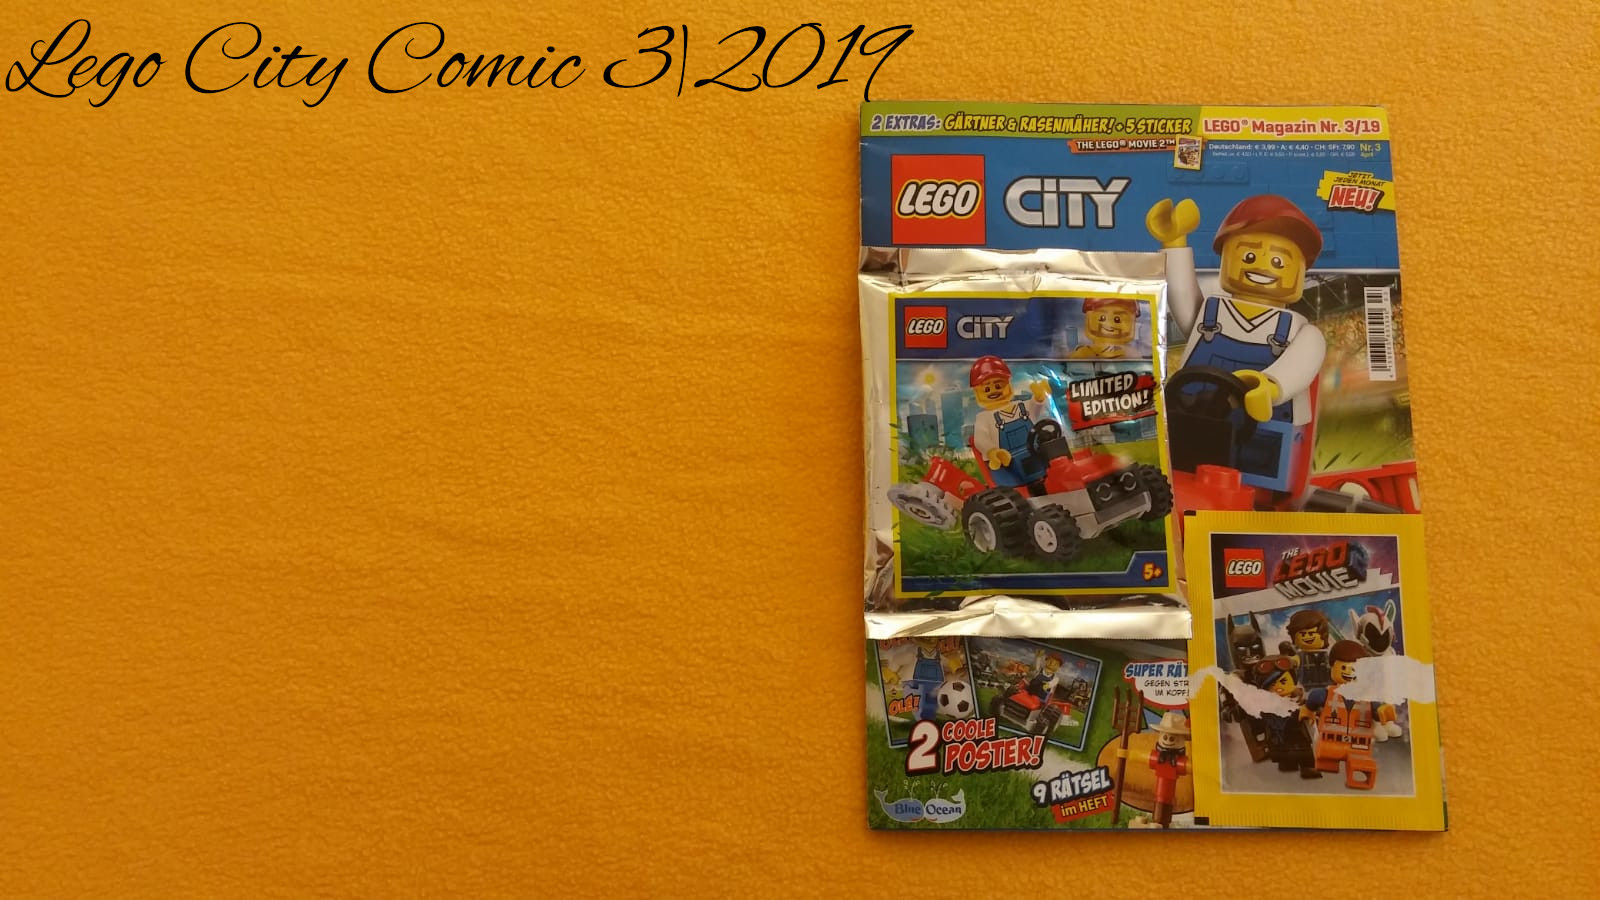 Lego City Comic 3 2019 Bricks4city